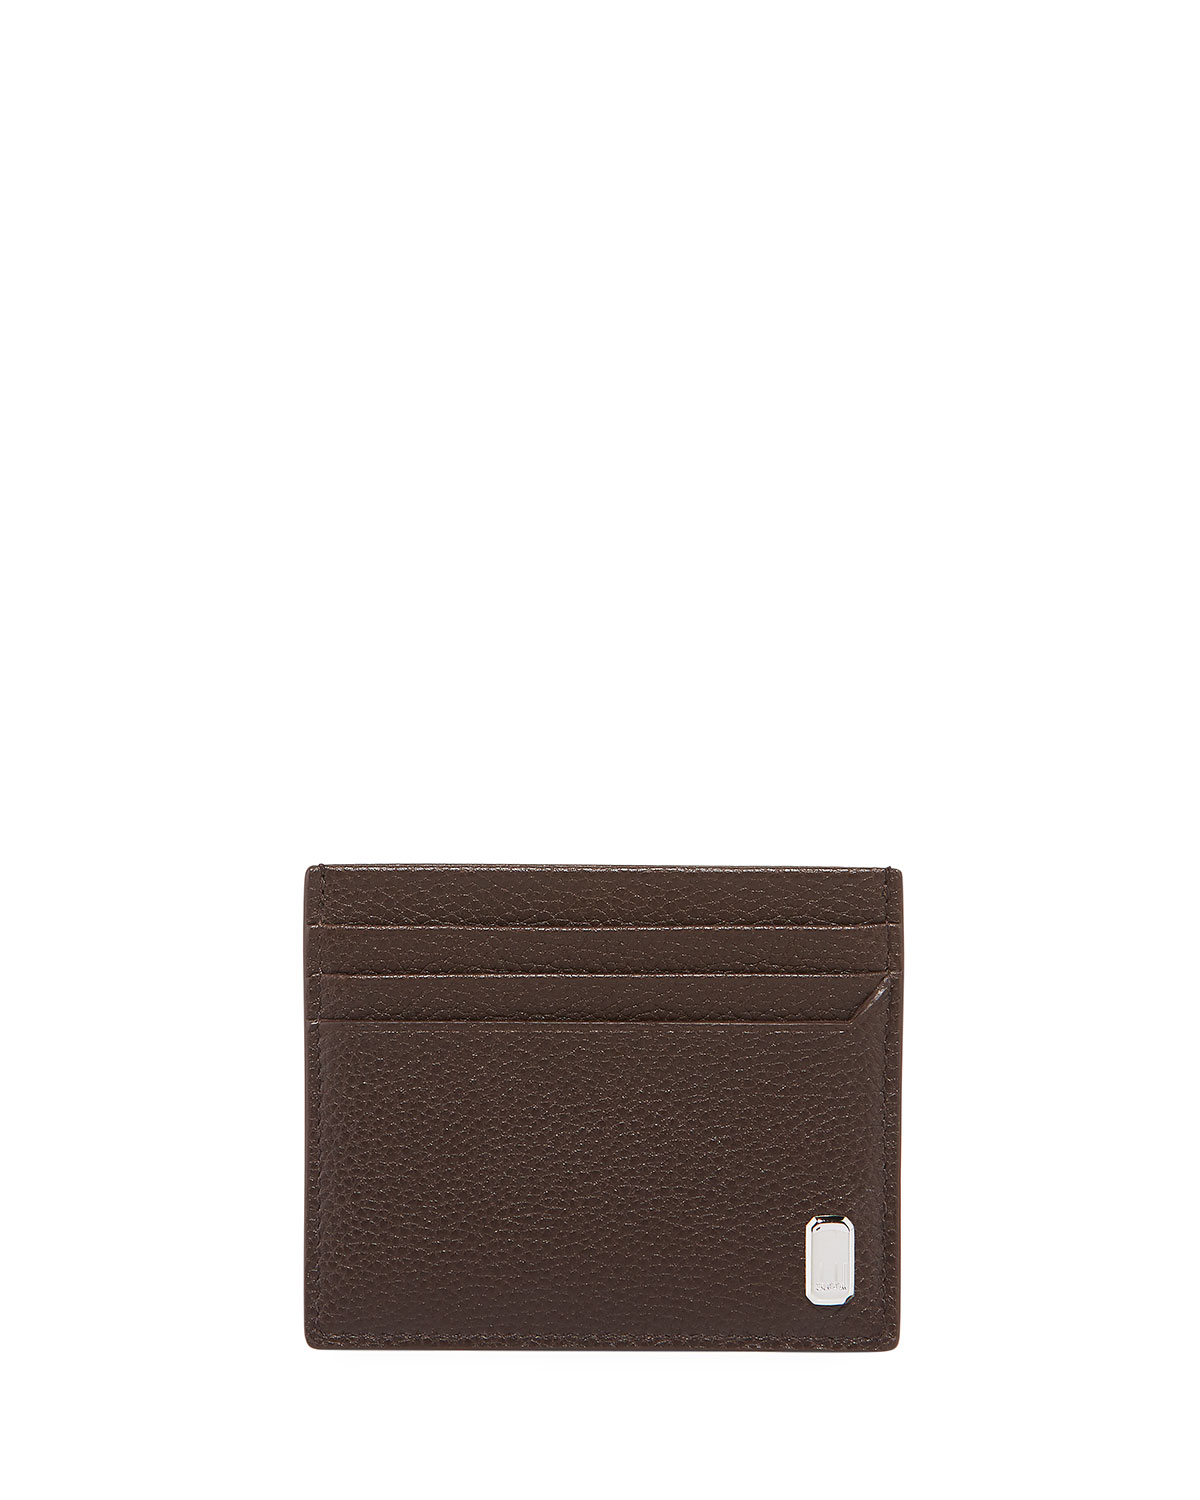 Dunhill Bags MEN'S BELGRAVE GRAINED LEATHER CARD CASE